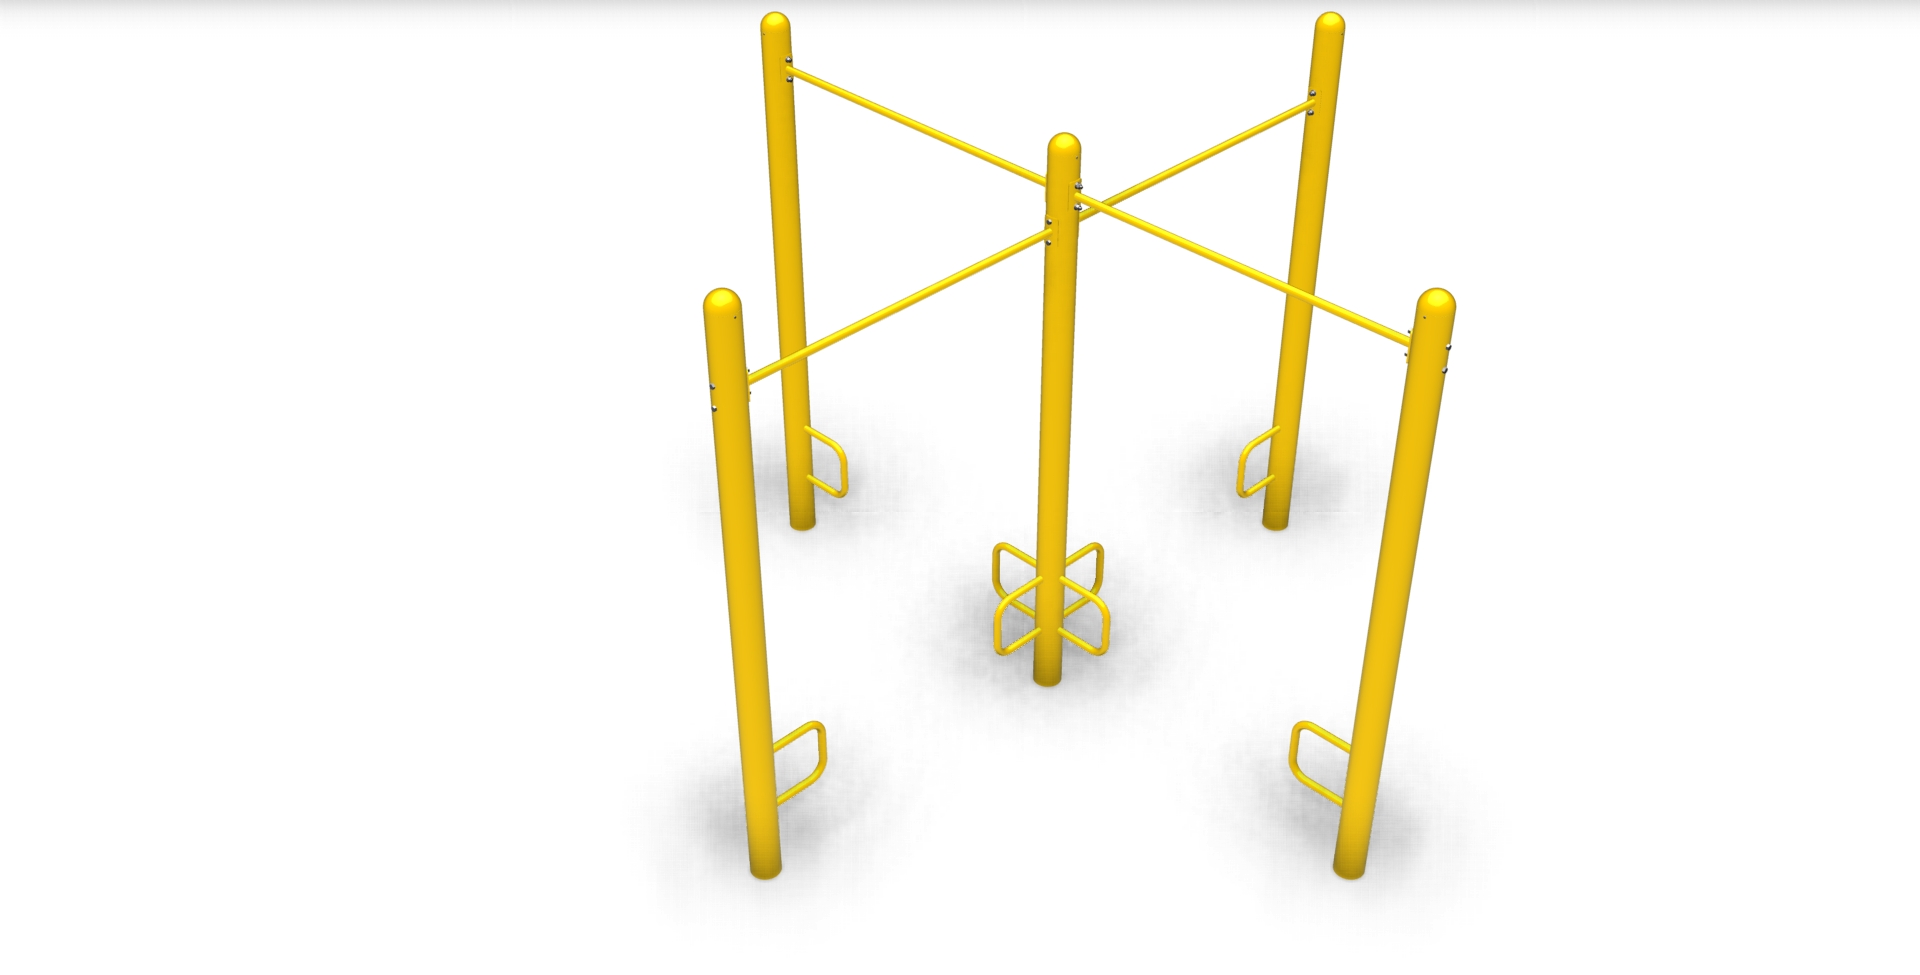 Military pull-up bars